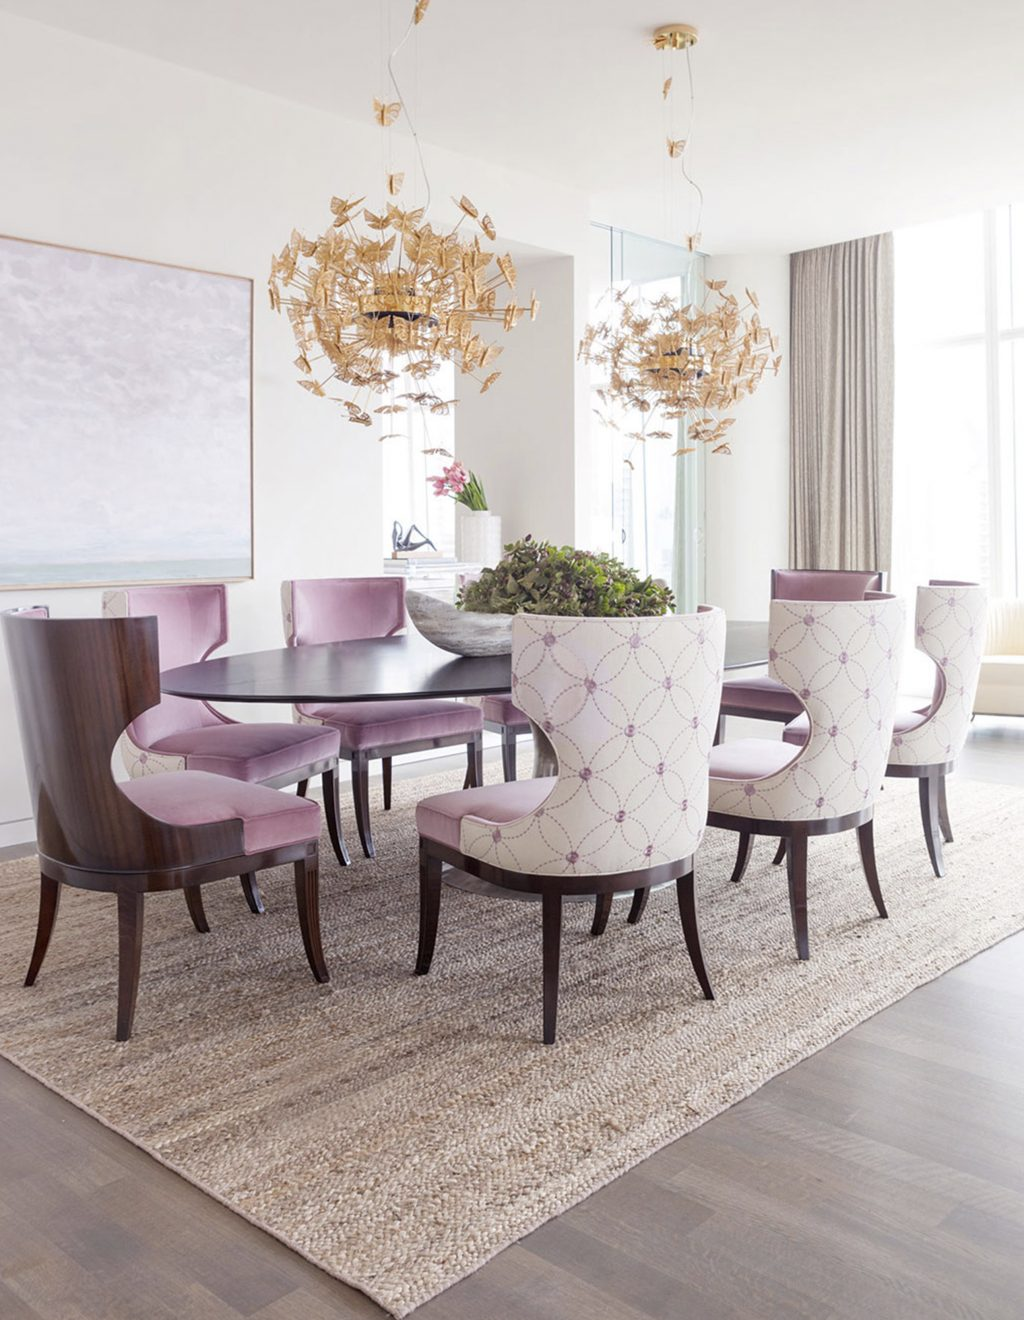 KOKET Trendy Dining Room Decorating Ideas for this Summer 10 Trendy Dining Room Decorating Ideas for this Summer 10 Trendy Dining Room Decorating Ideas for this Summer8